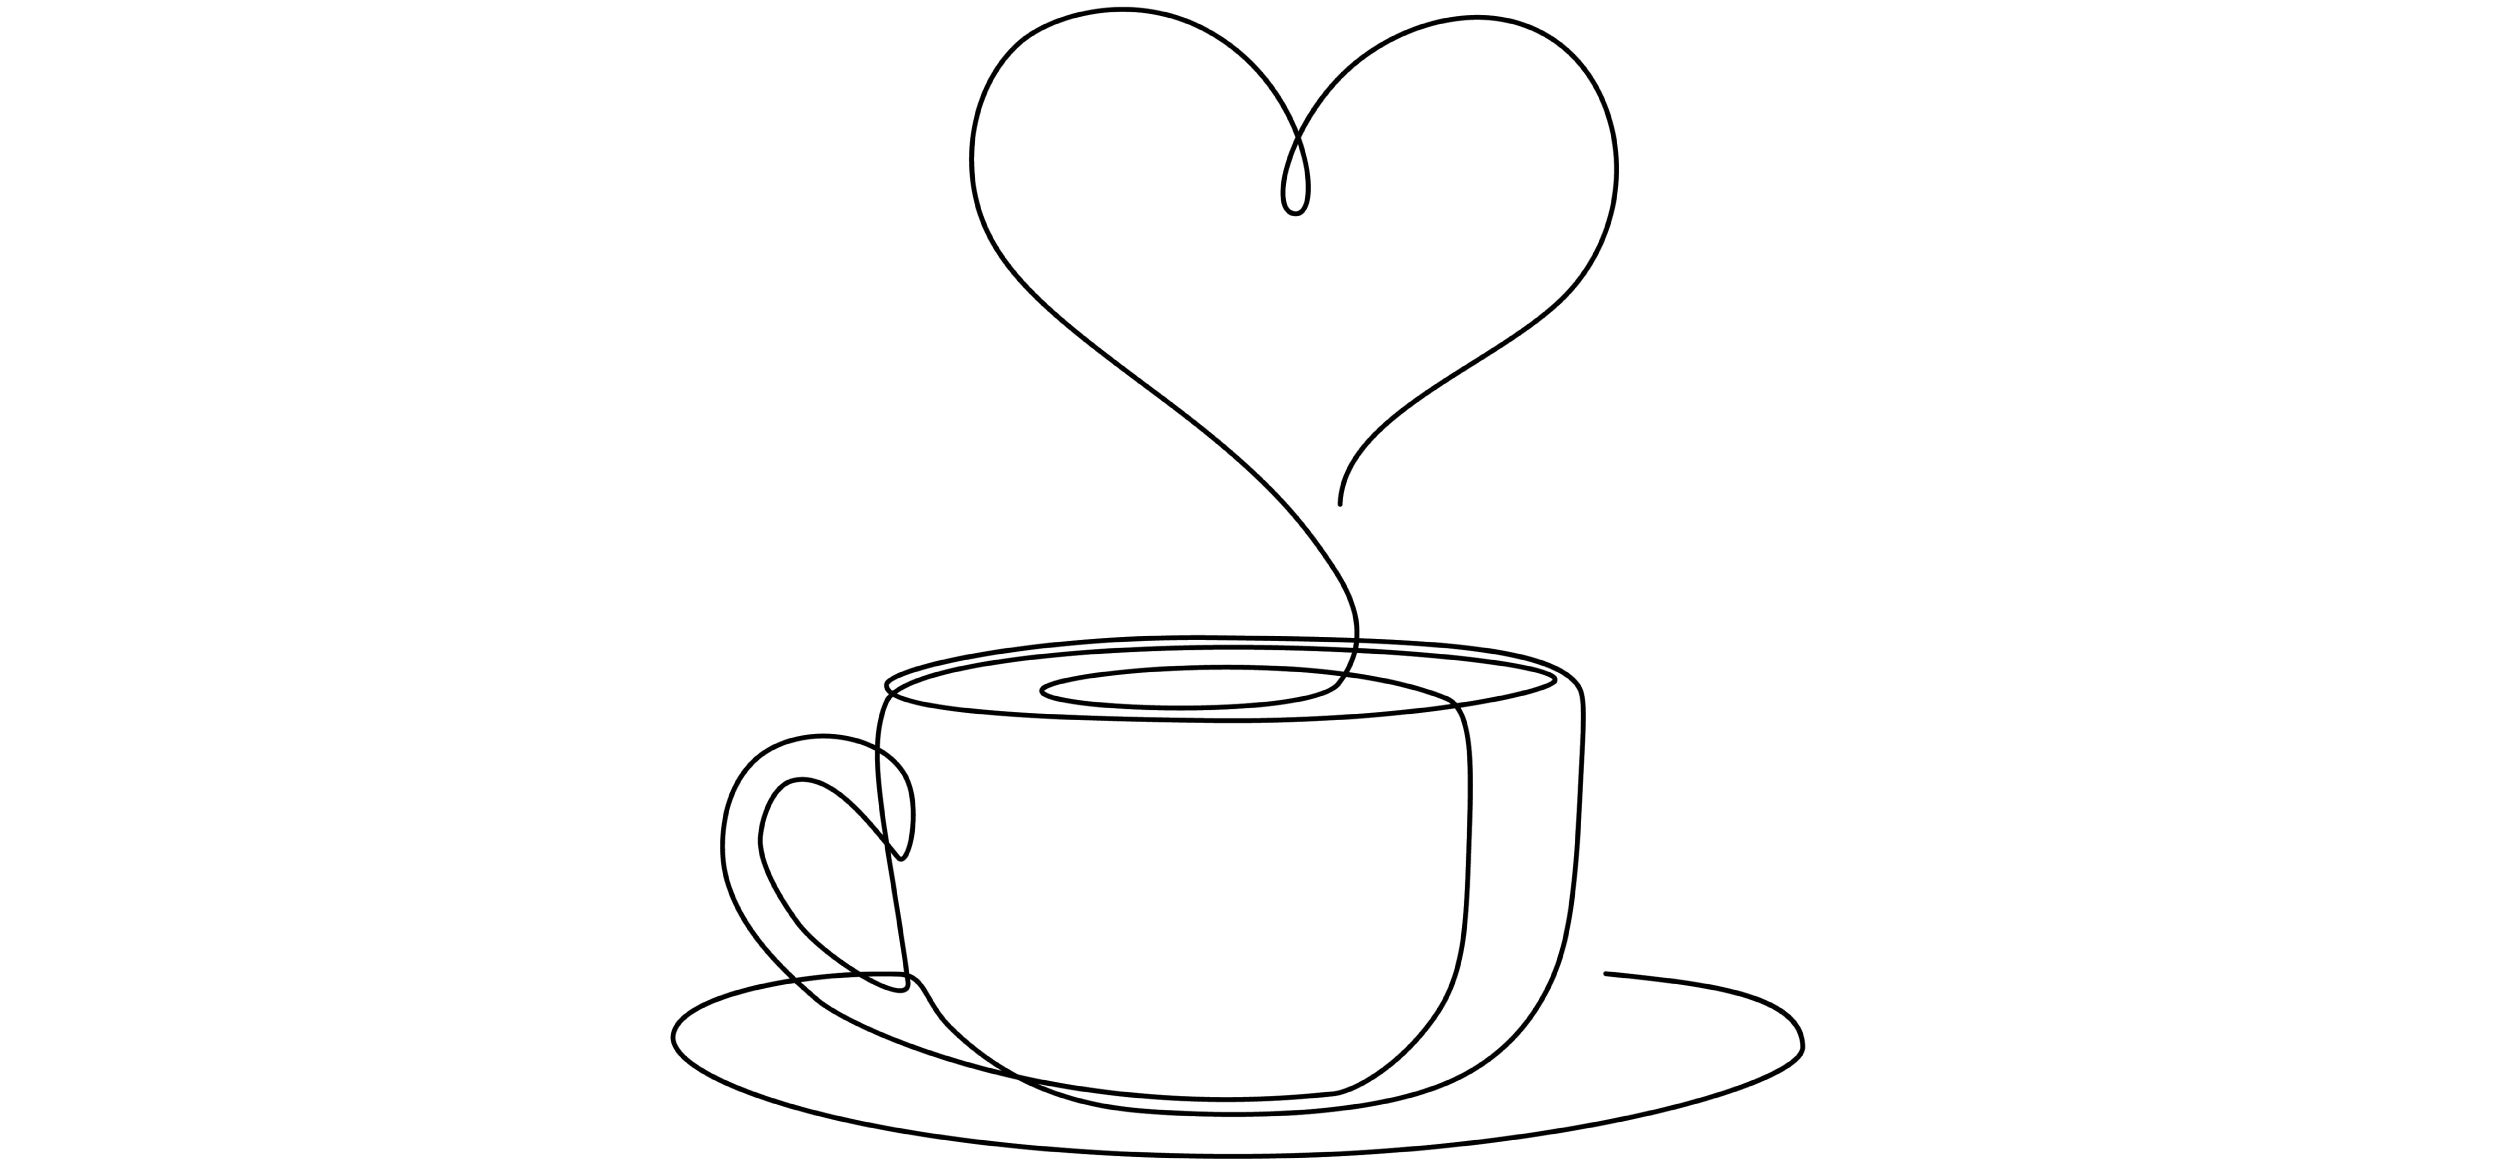 Sketch of coffee cup.